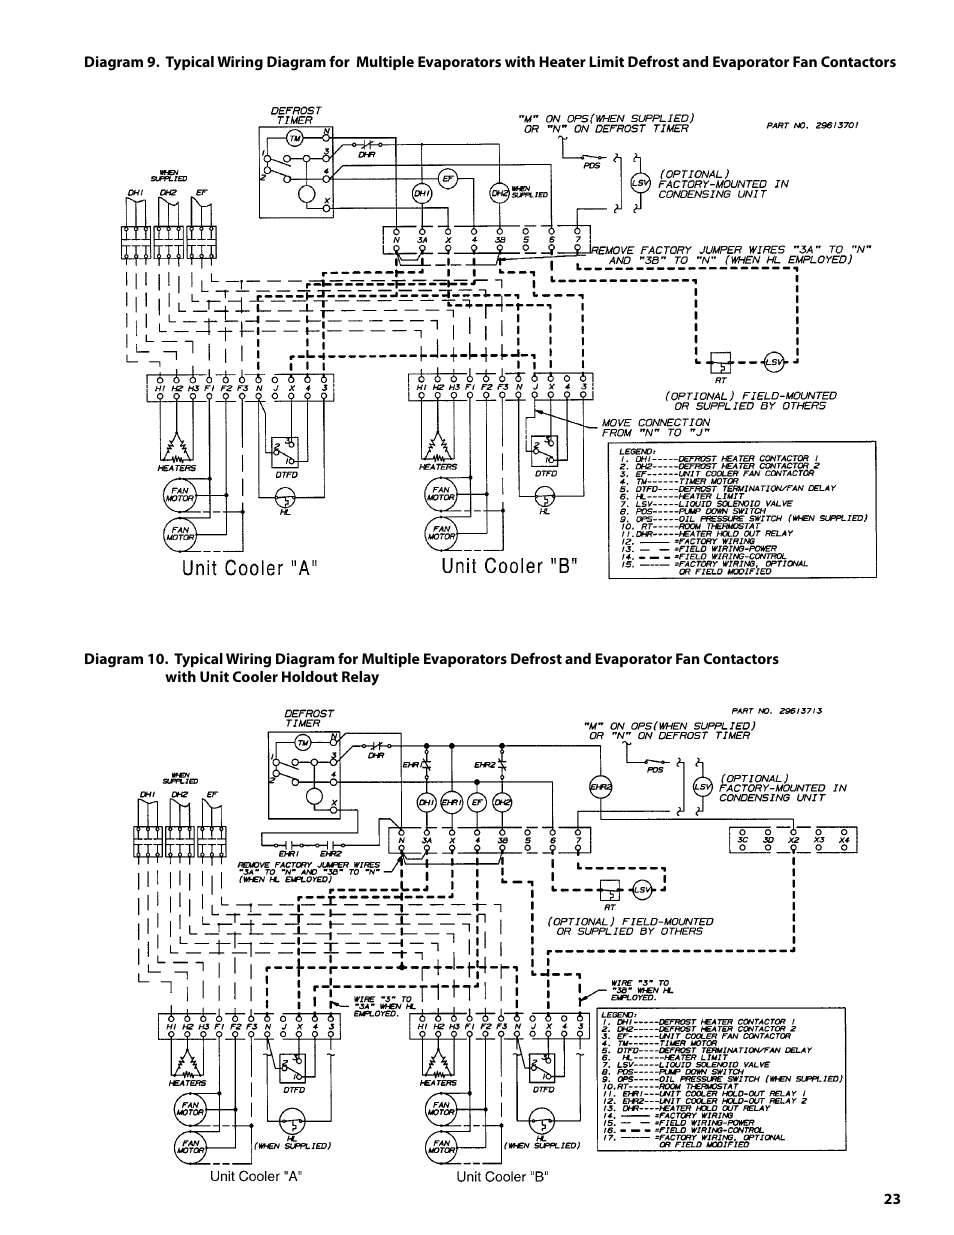 heatcraft refrigeration products condensing units h im cu page23 heatcraft refrigeration products condensing units h im cu user heatcraft wiring diagram at mifinder.co